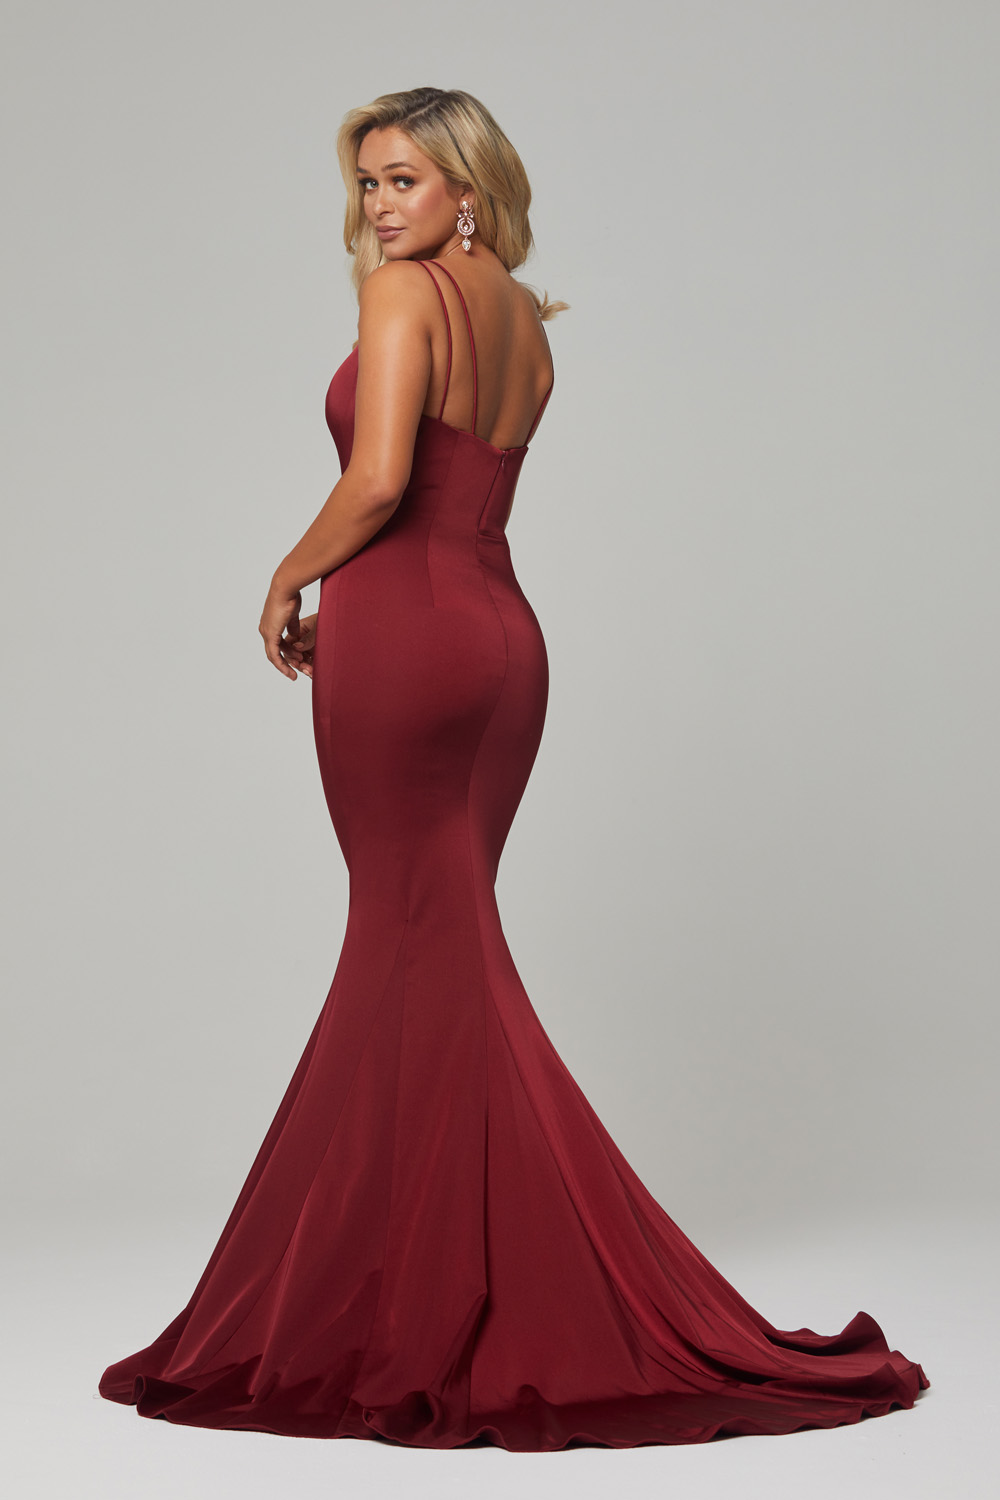 PO593 Wine Bree dress back